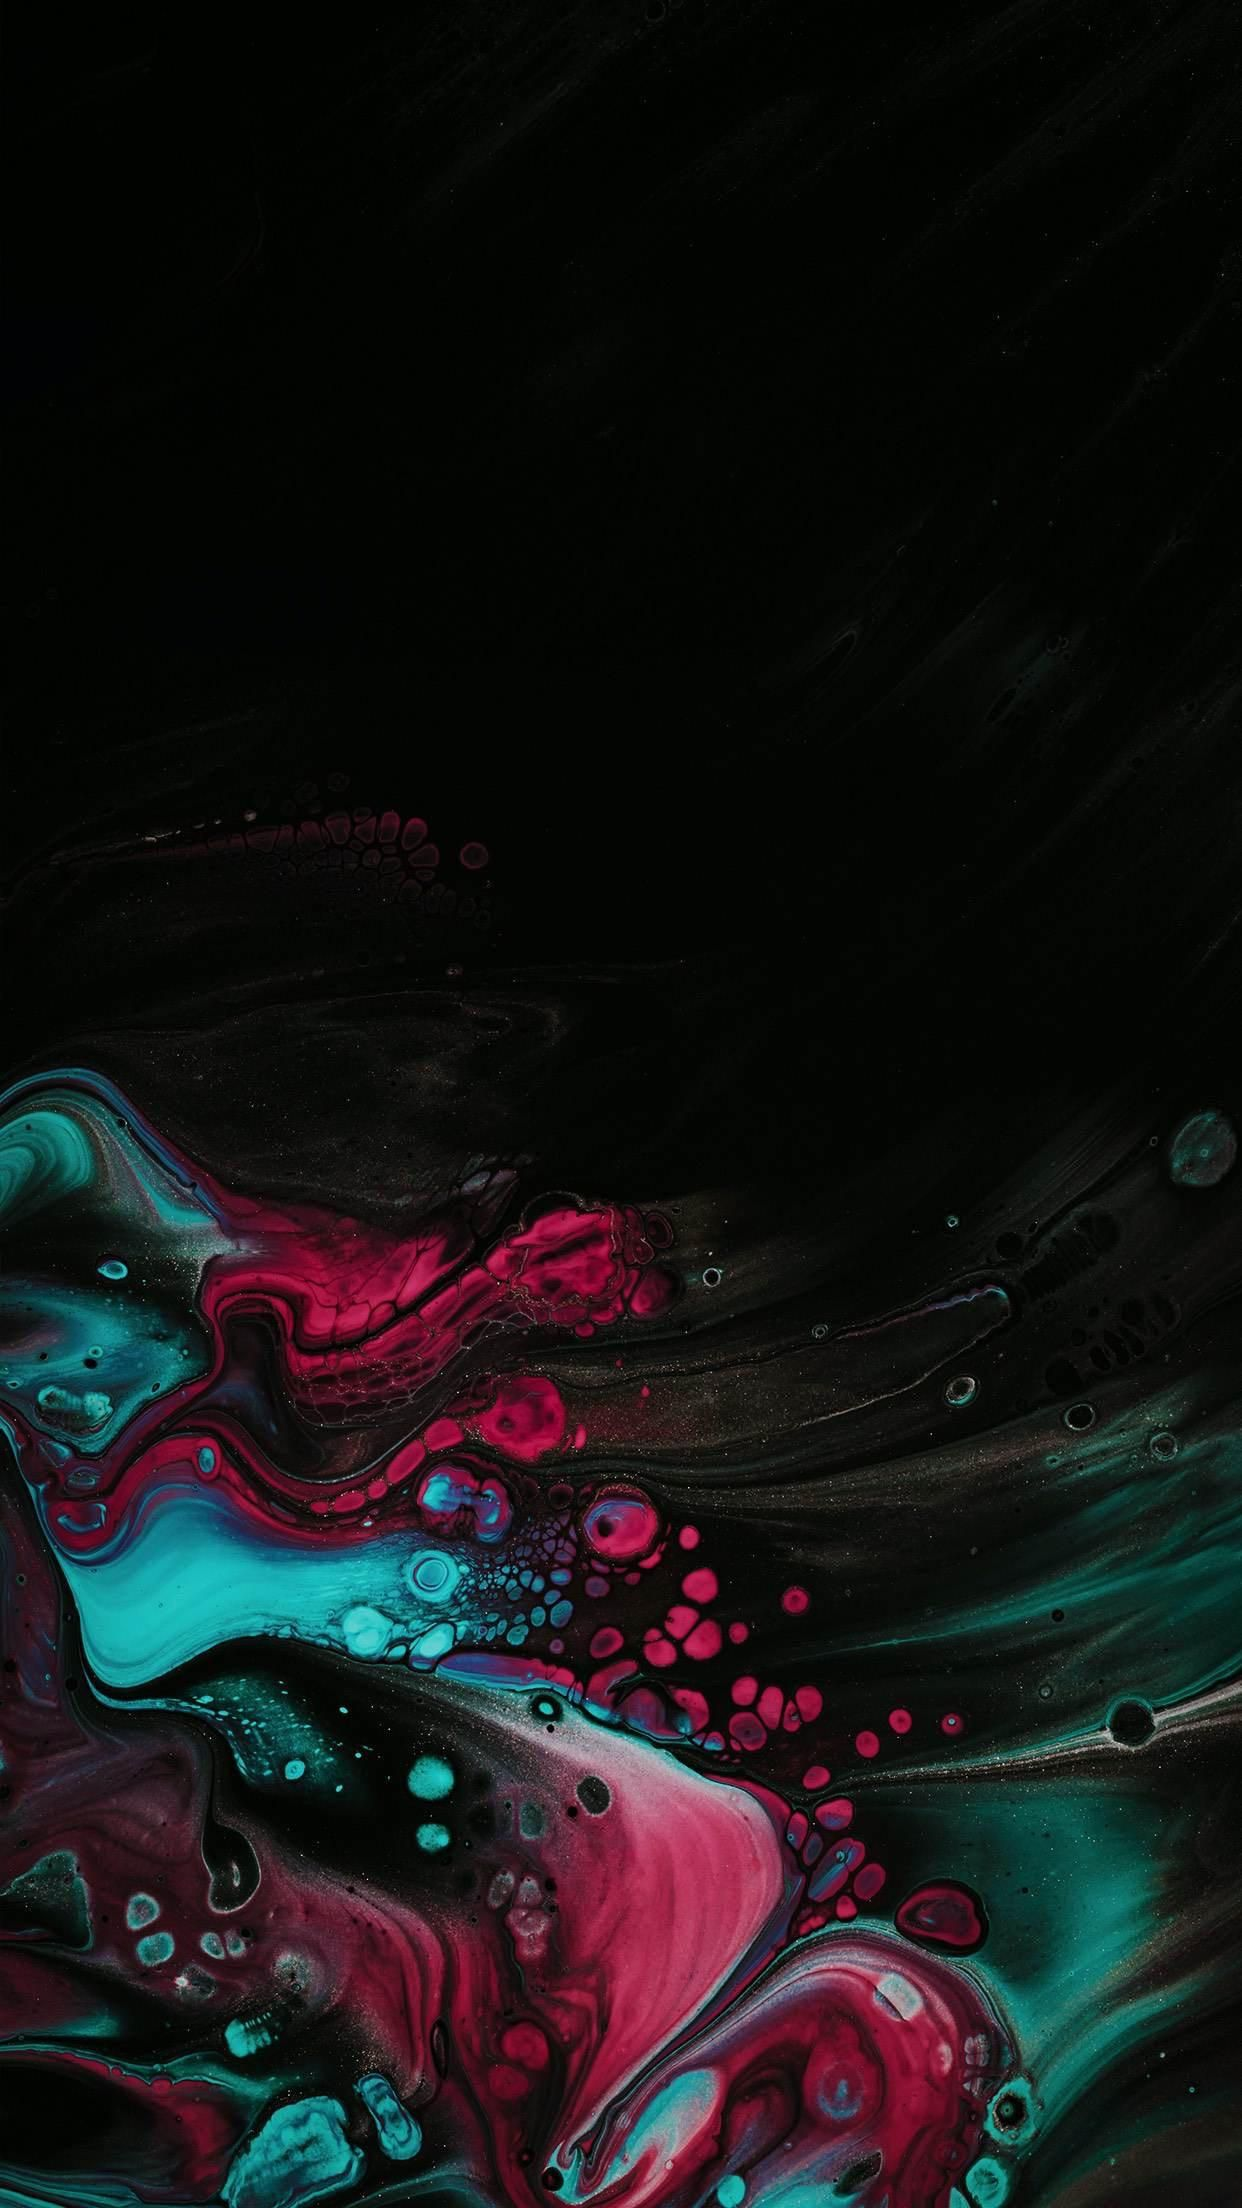 Bubbly OLED in 2020 Dark wallpaper, Colorful wallpaper